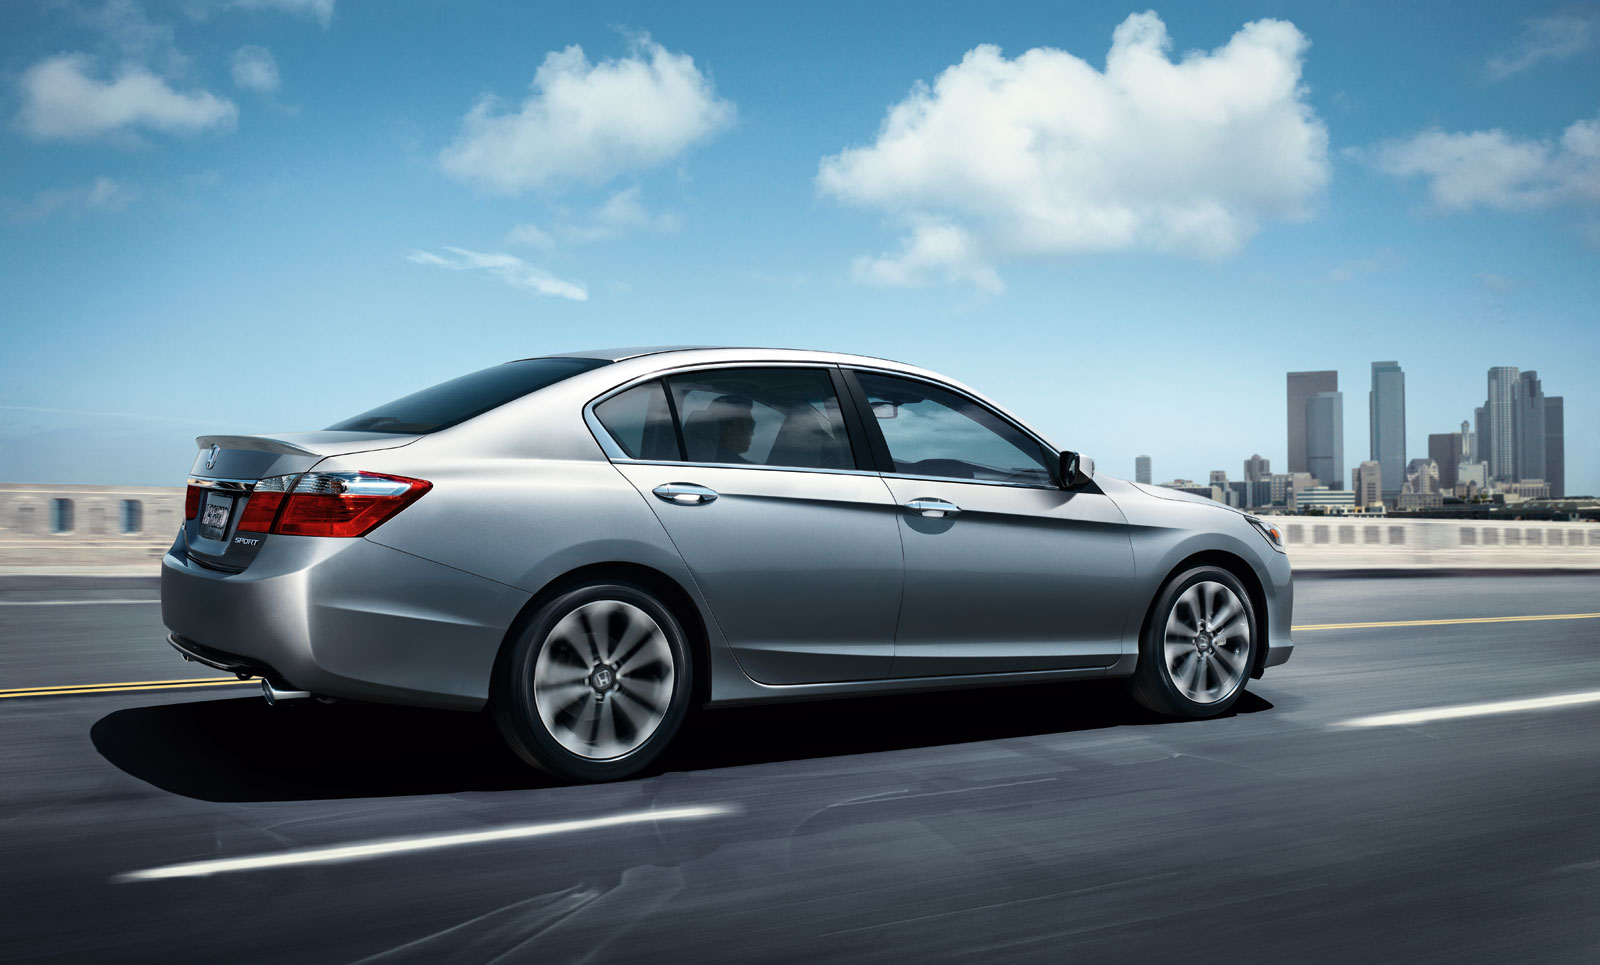 2013 Honda Accord Wallpaper Size